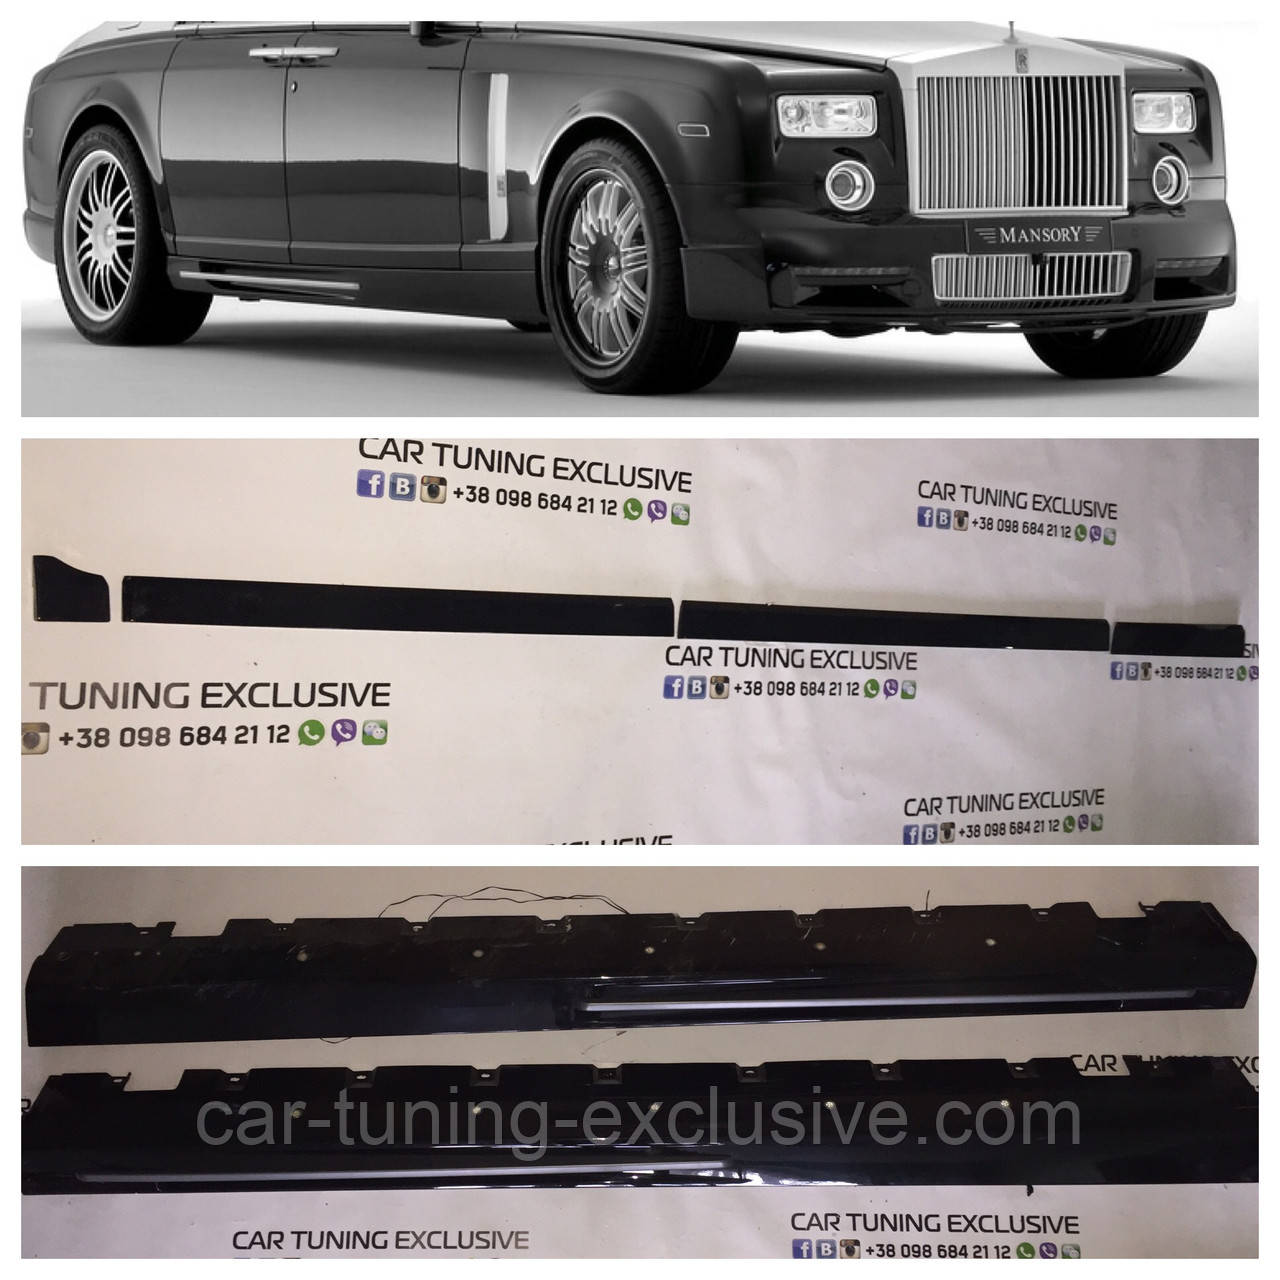 Body Kit Mansory Conquistador For Rolls Royce Phantom 2 Rr6 111 706 Rr6 111 716 Rr5 111 706 Rr5 112 705 Rr5 171 703 Rr5 171 704 Rr5 171 705 Rr5 171 706 Rr5 171 716 Rr 7066 753 Rr 7066 754 Rr 5110 701